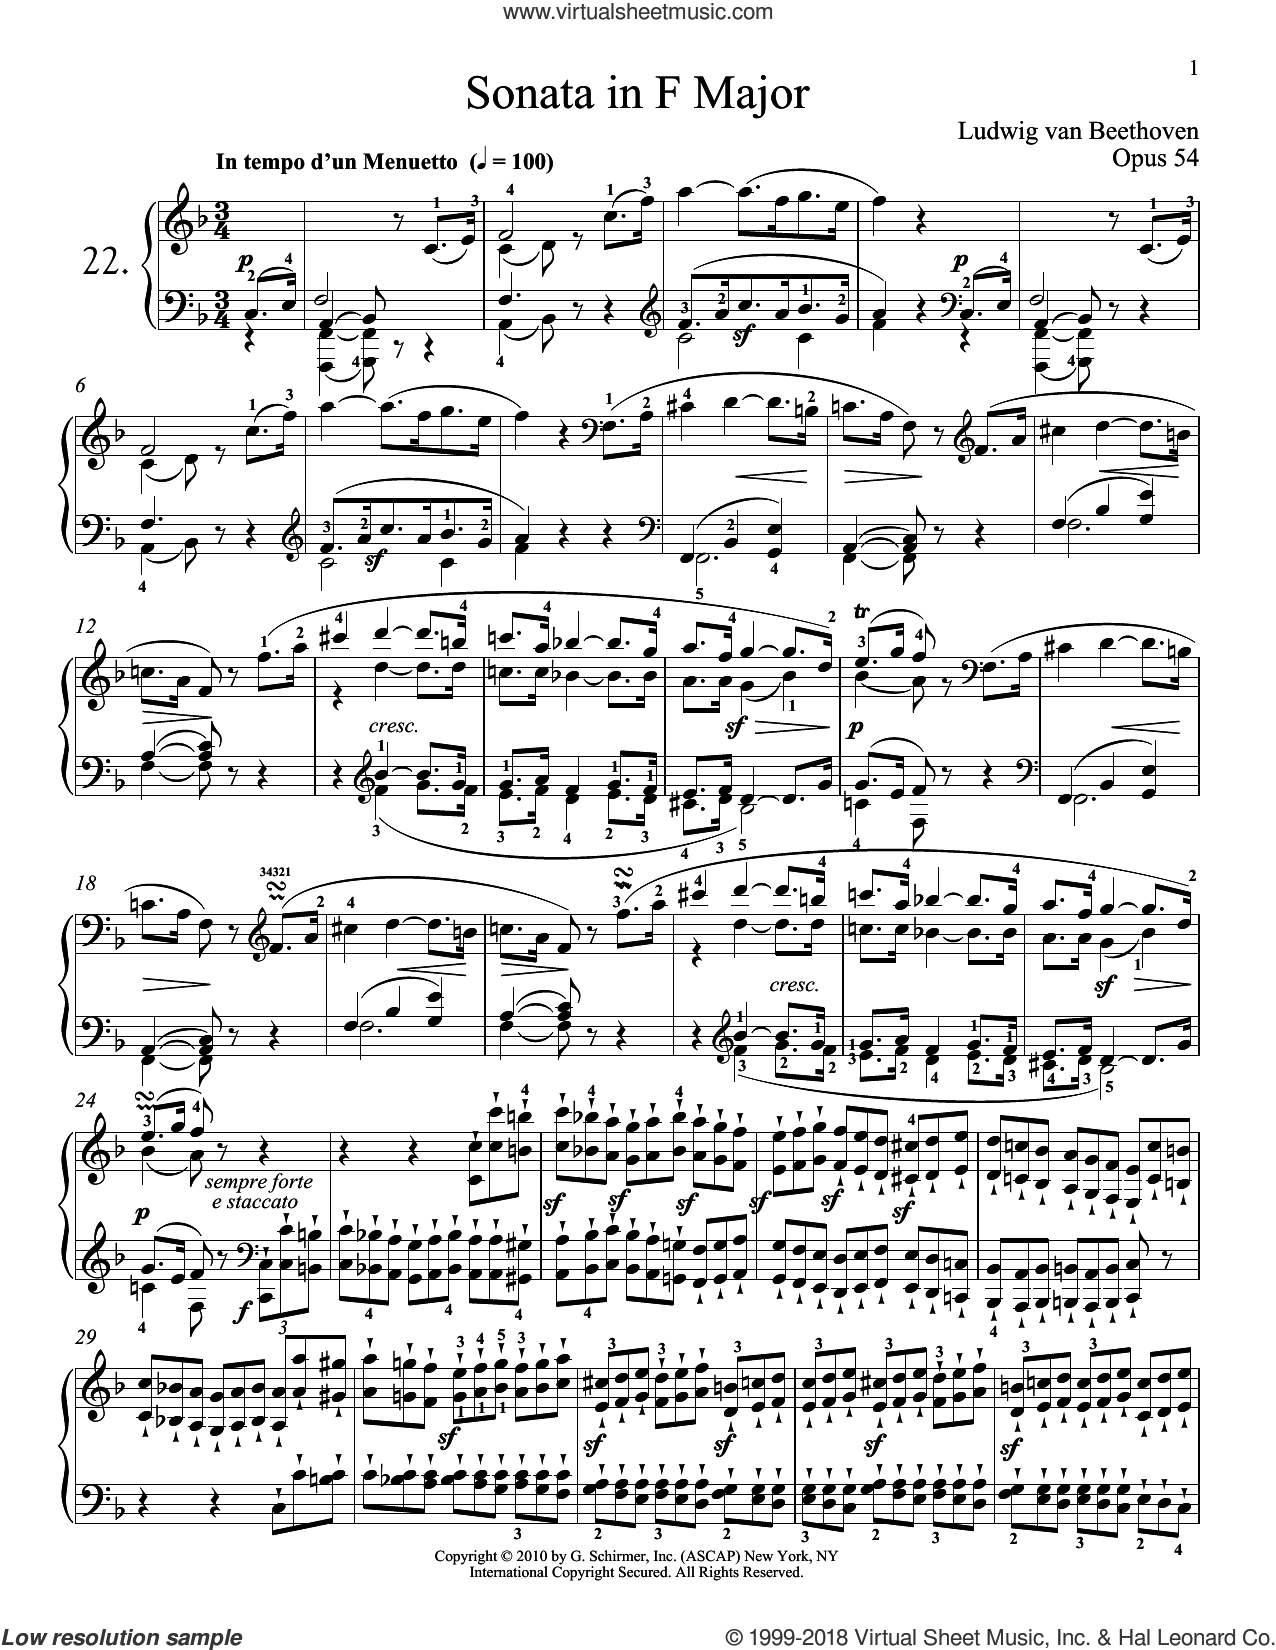 Piano Sonata No. 22 In F Major, Op. 54 sheet music for piano solo by Ludwig van Beethoven and Robert Taub, classical score, intermediate skill level